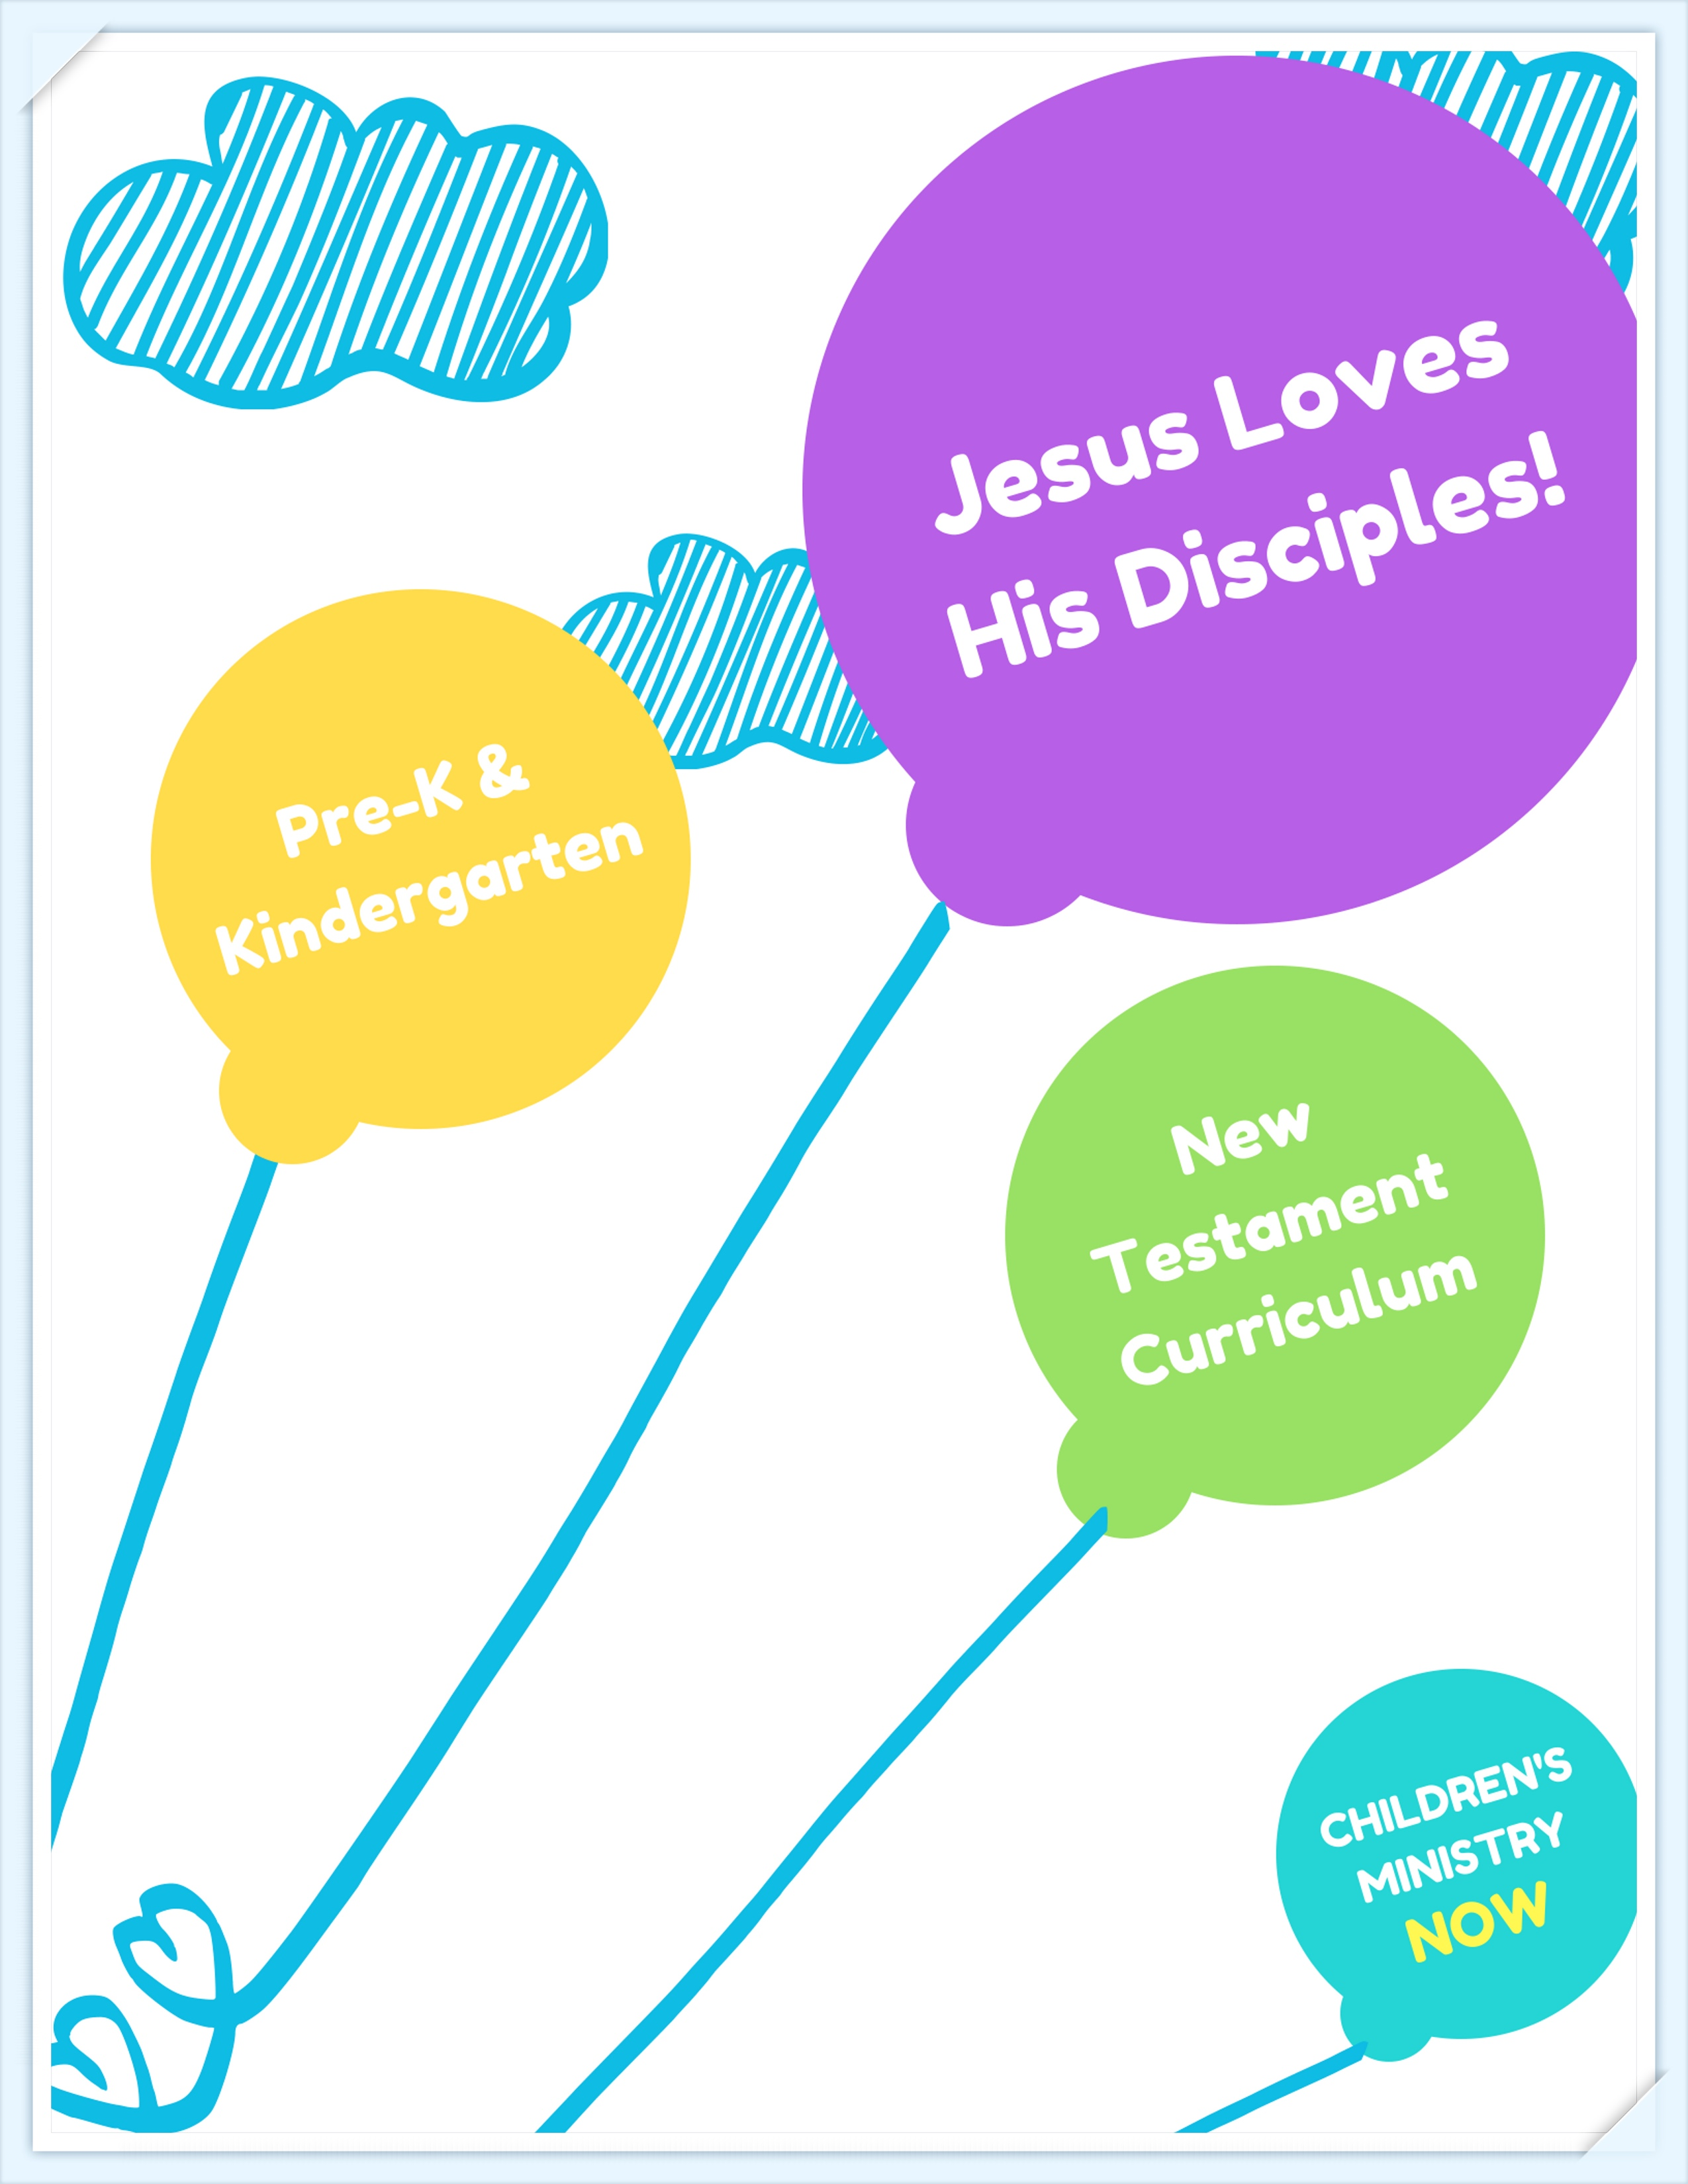 Curriculum - Children's Ministry Now - Pre-K to 4th Grade